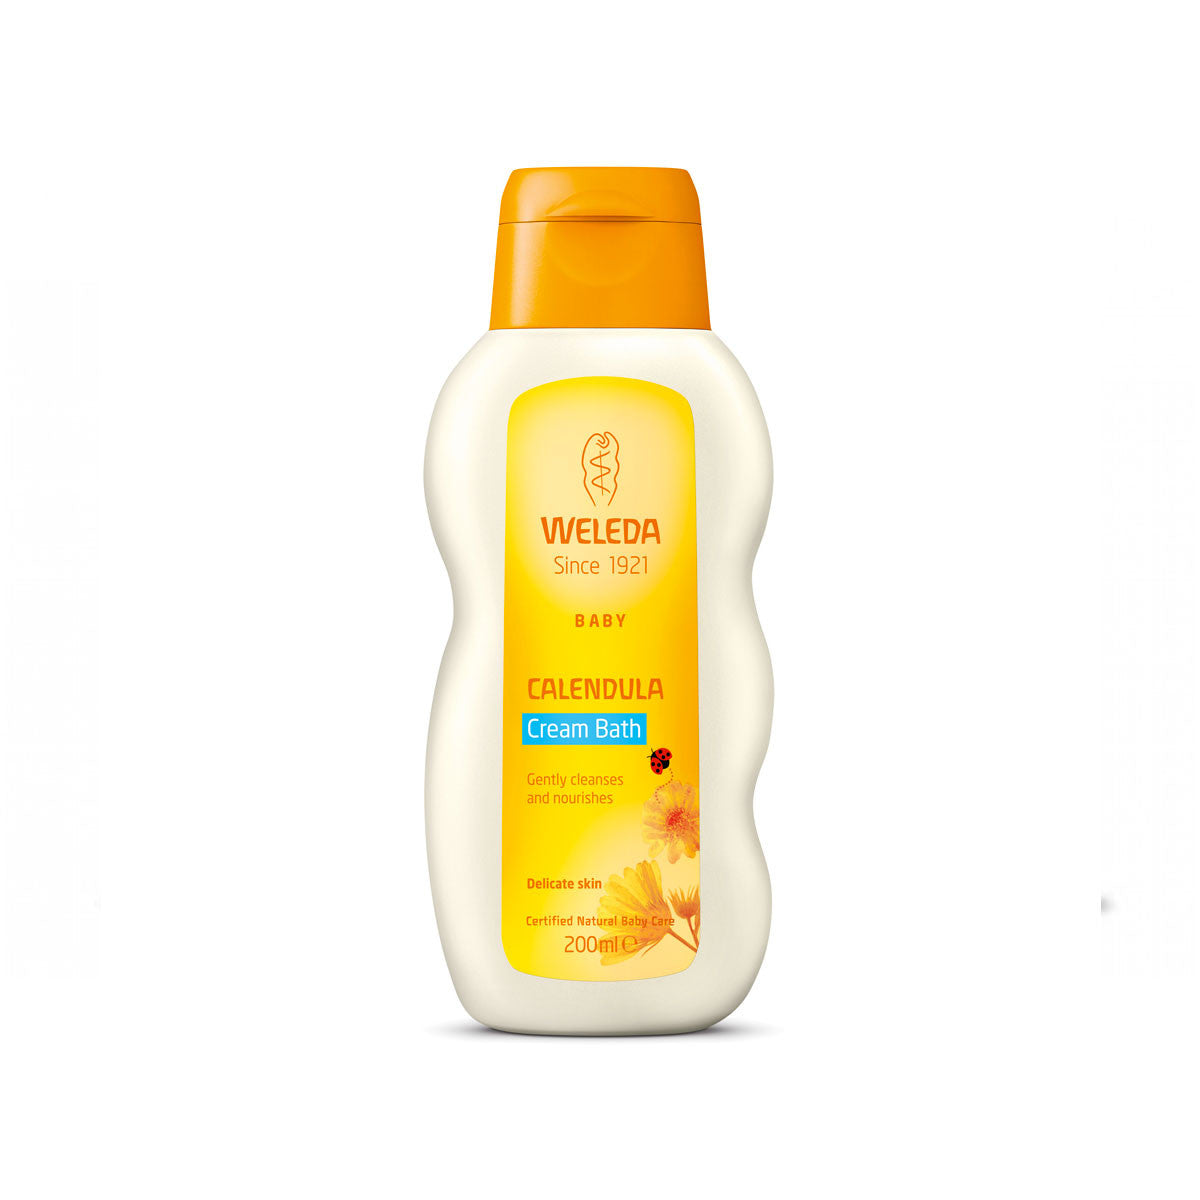 Weleda Calendula Cream Bath 200mL   - Weleda - Little Earth Nest